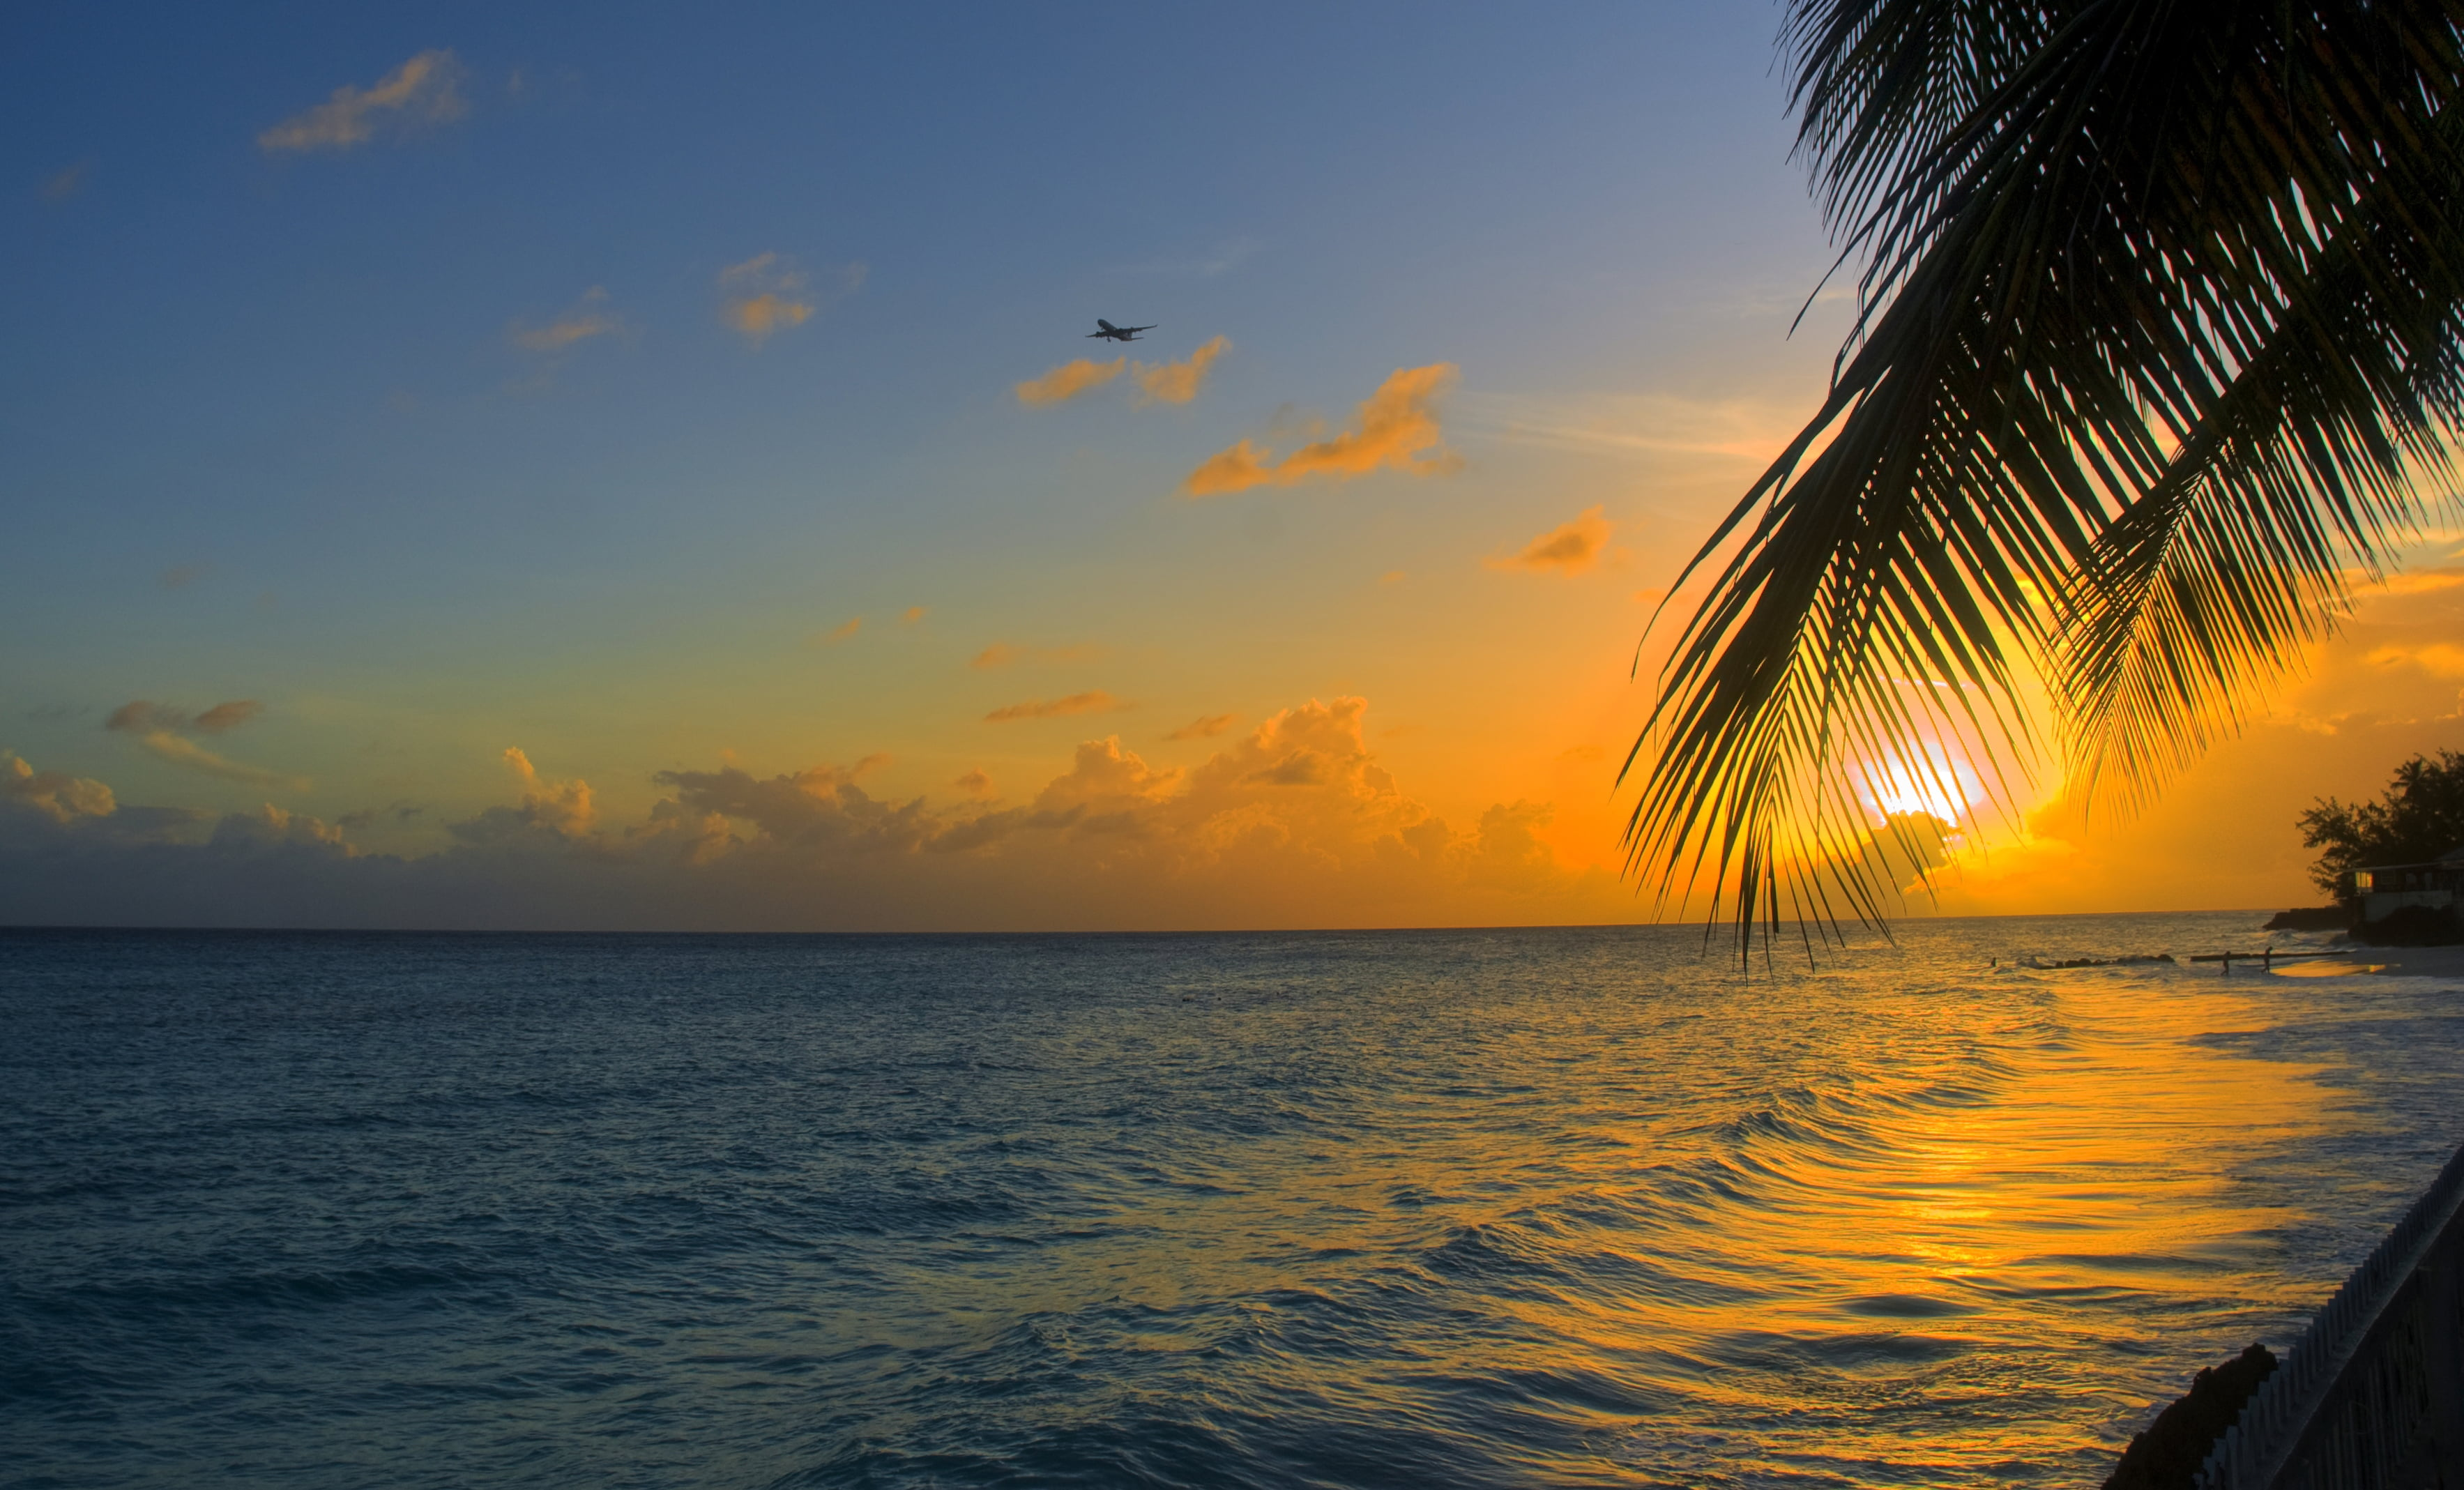 Photograph of sunrise barbados HD wallpaper Wallpaper Flare 3534x2137